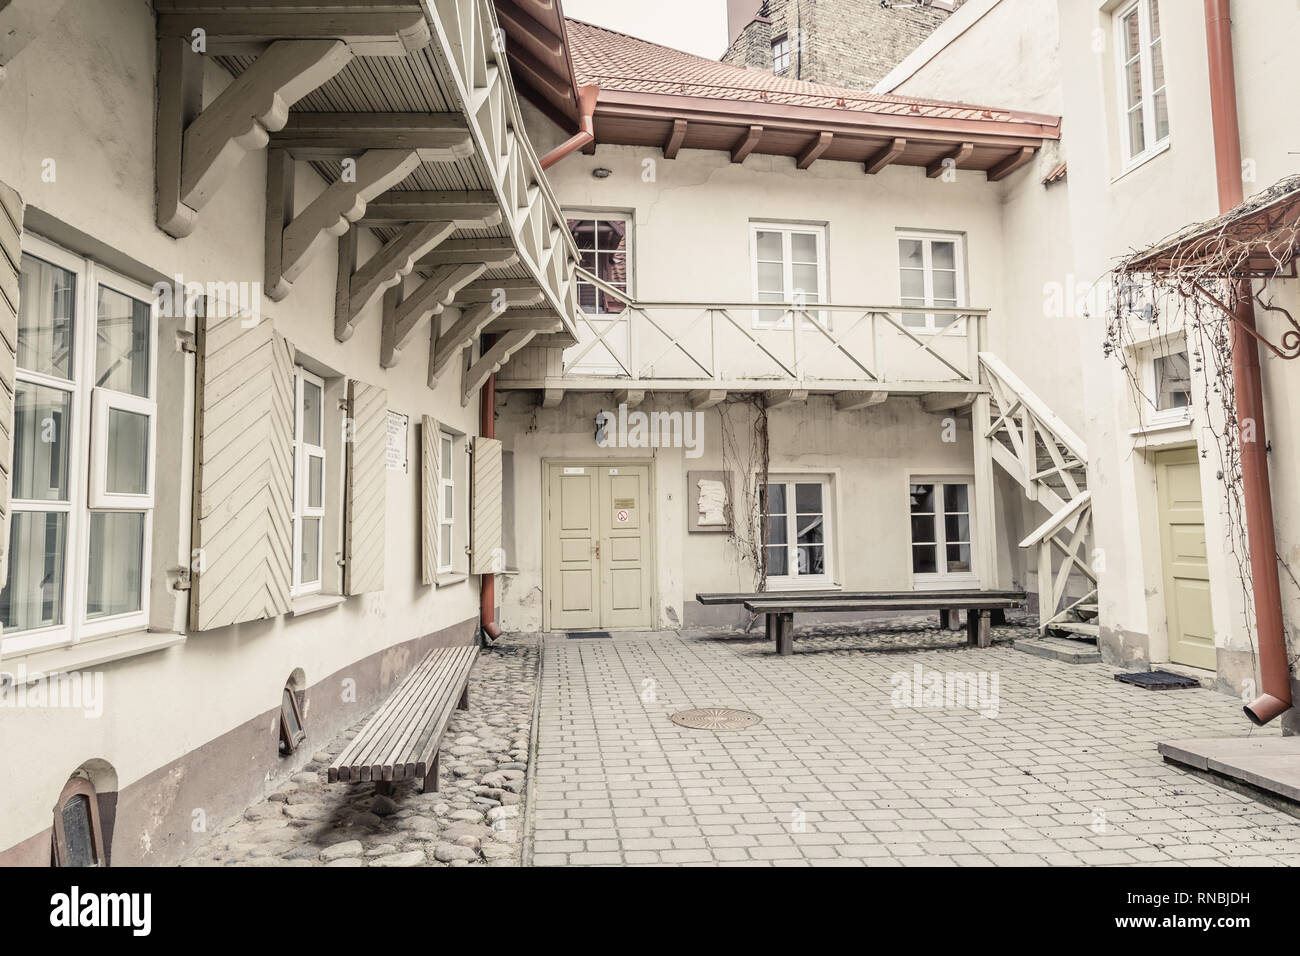 Picturesque courtyard in the old town Vilnius, Lithuania Stock Photo